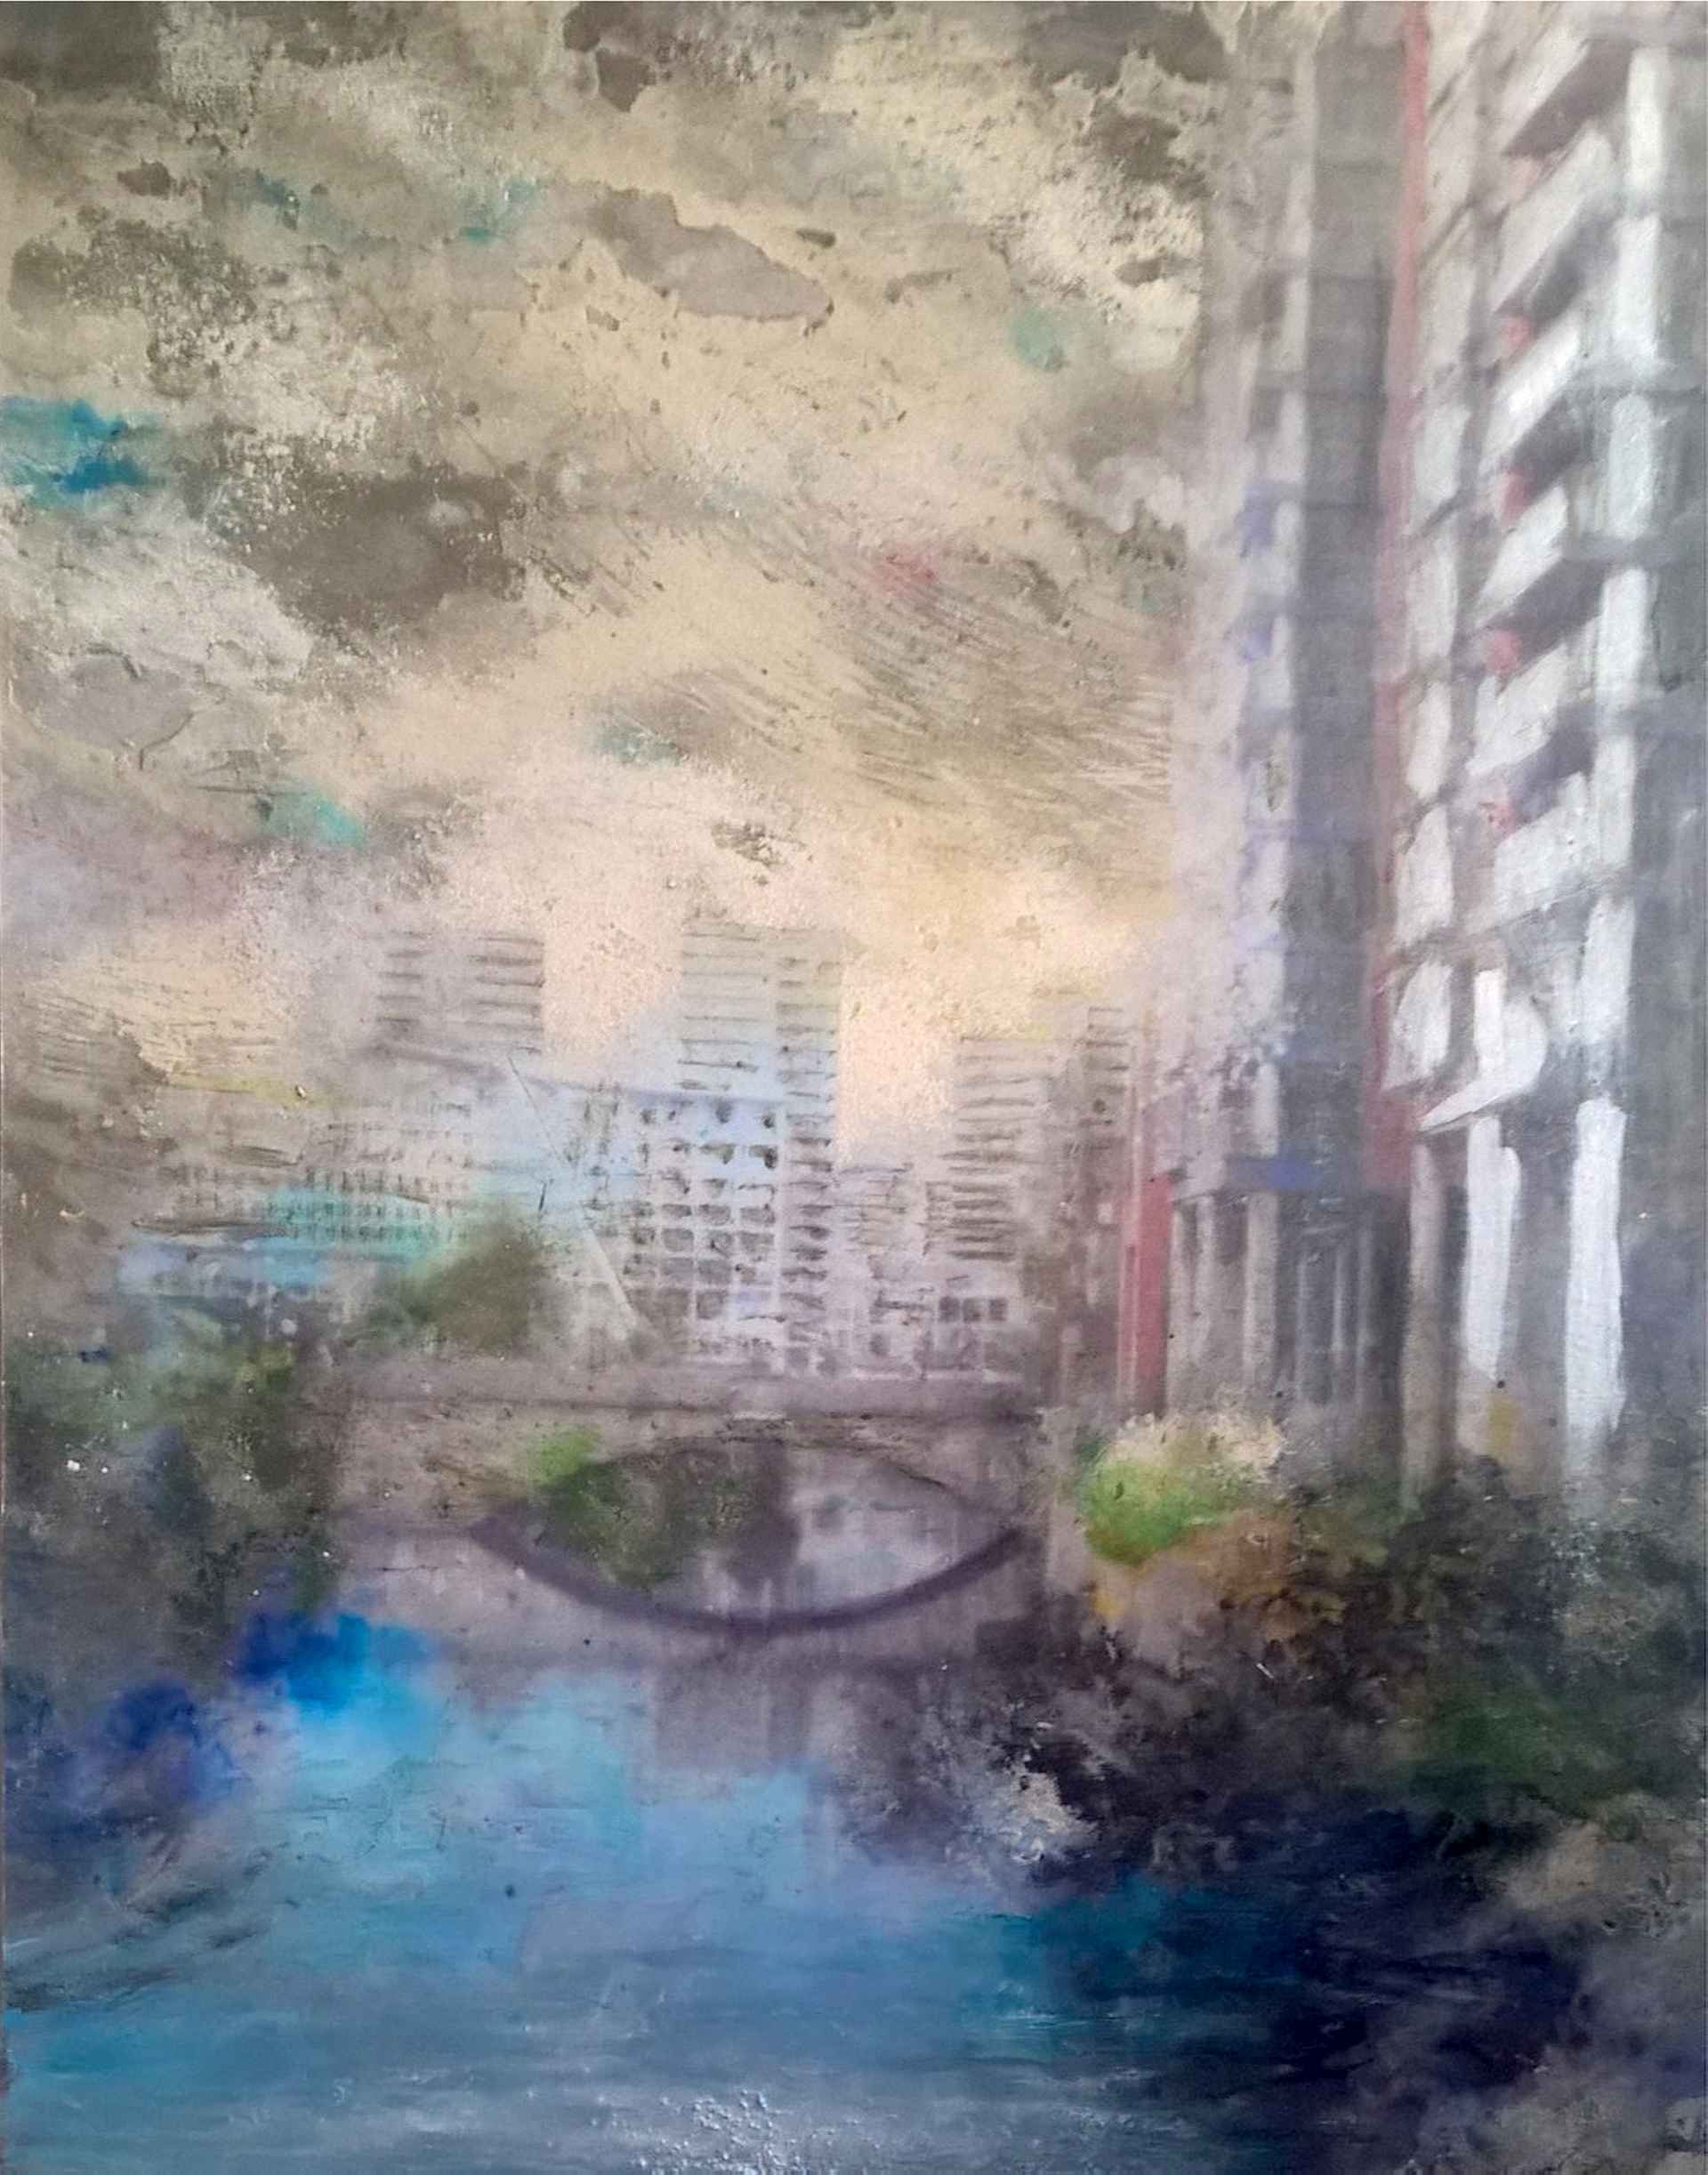 Irwell River by Tim Garner in Manctopia